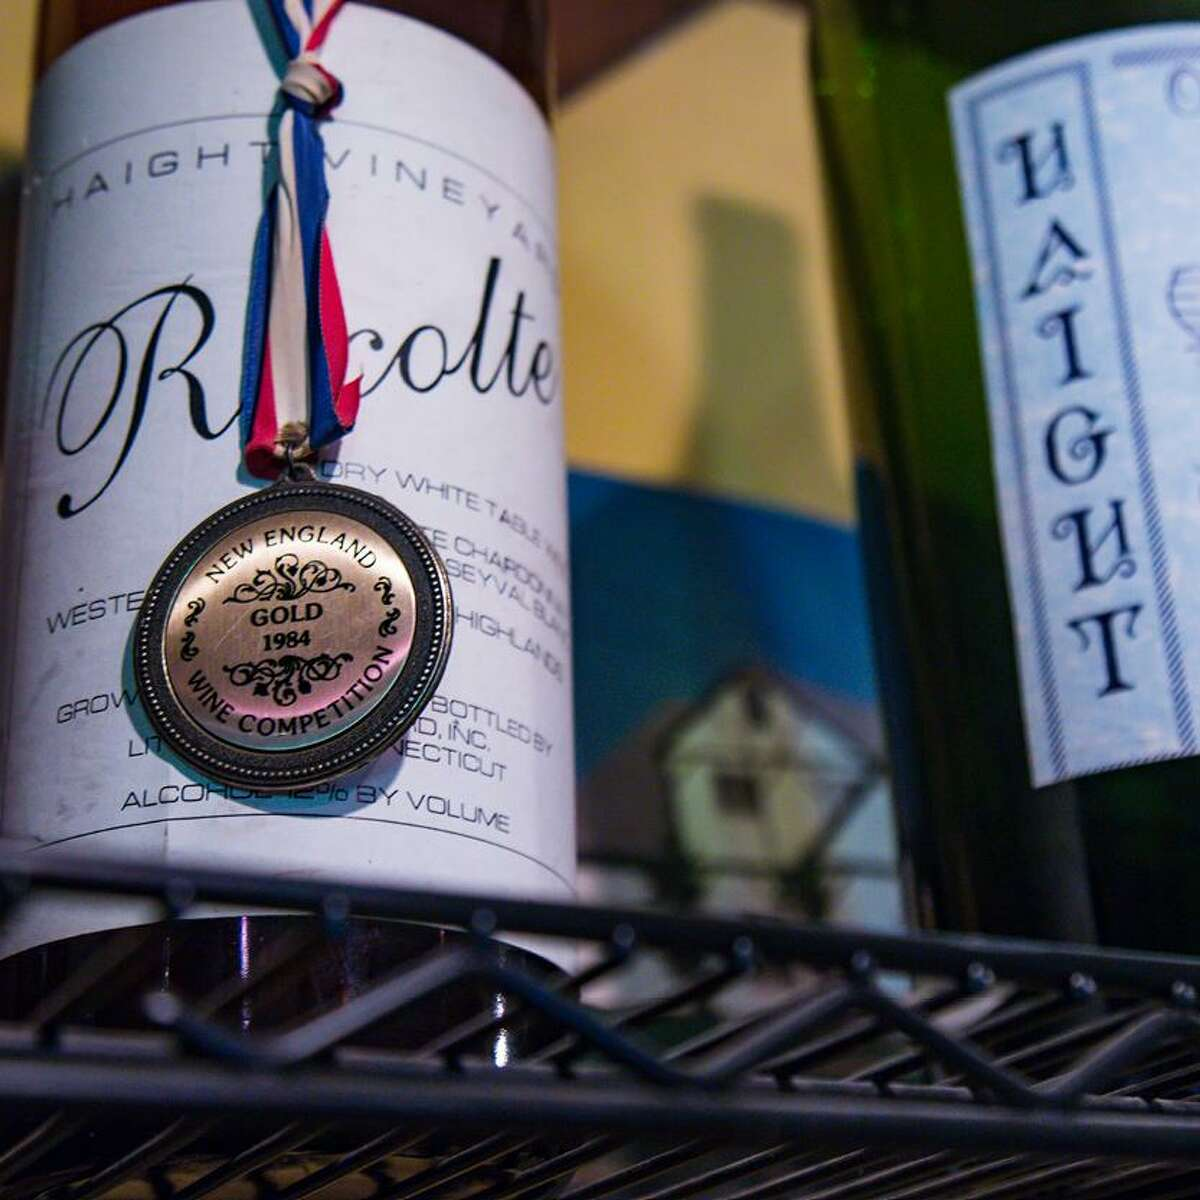 Haight-Brown Vineyard is holding Friendly Hands Food Bank's 30th anniversary gala June 12. Tickets include food stations, wine and desserts, a silent auction and raffle prizes.